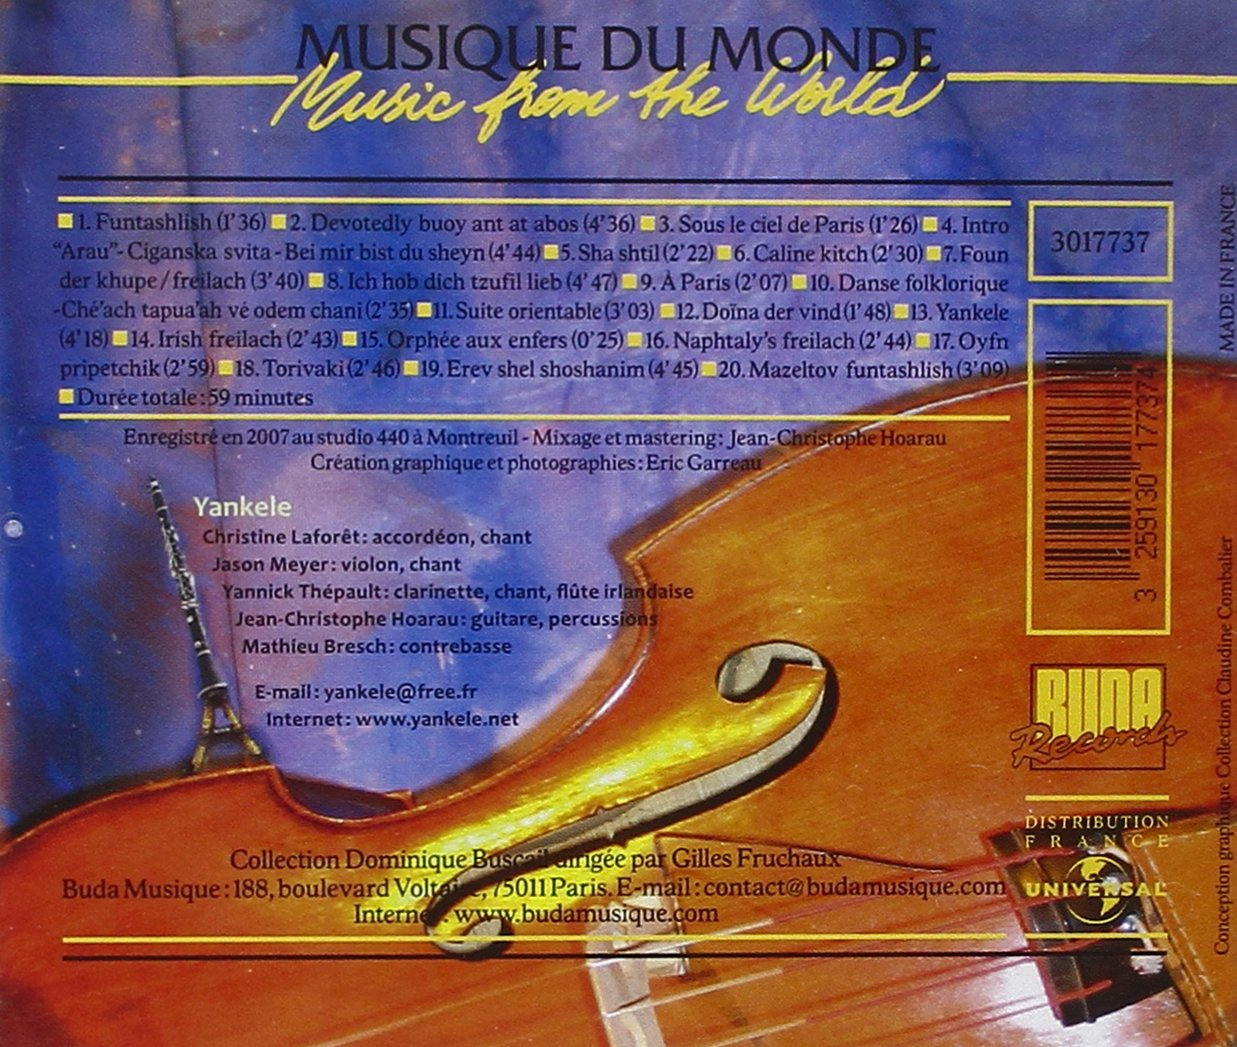 Music From the World: Paris/Klezmer